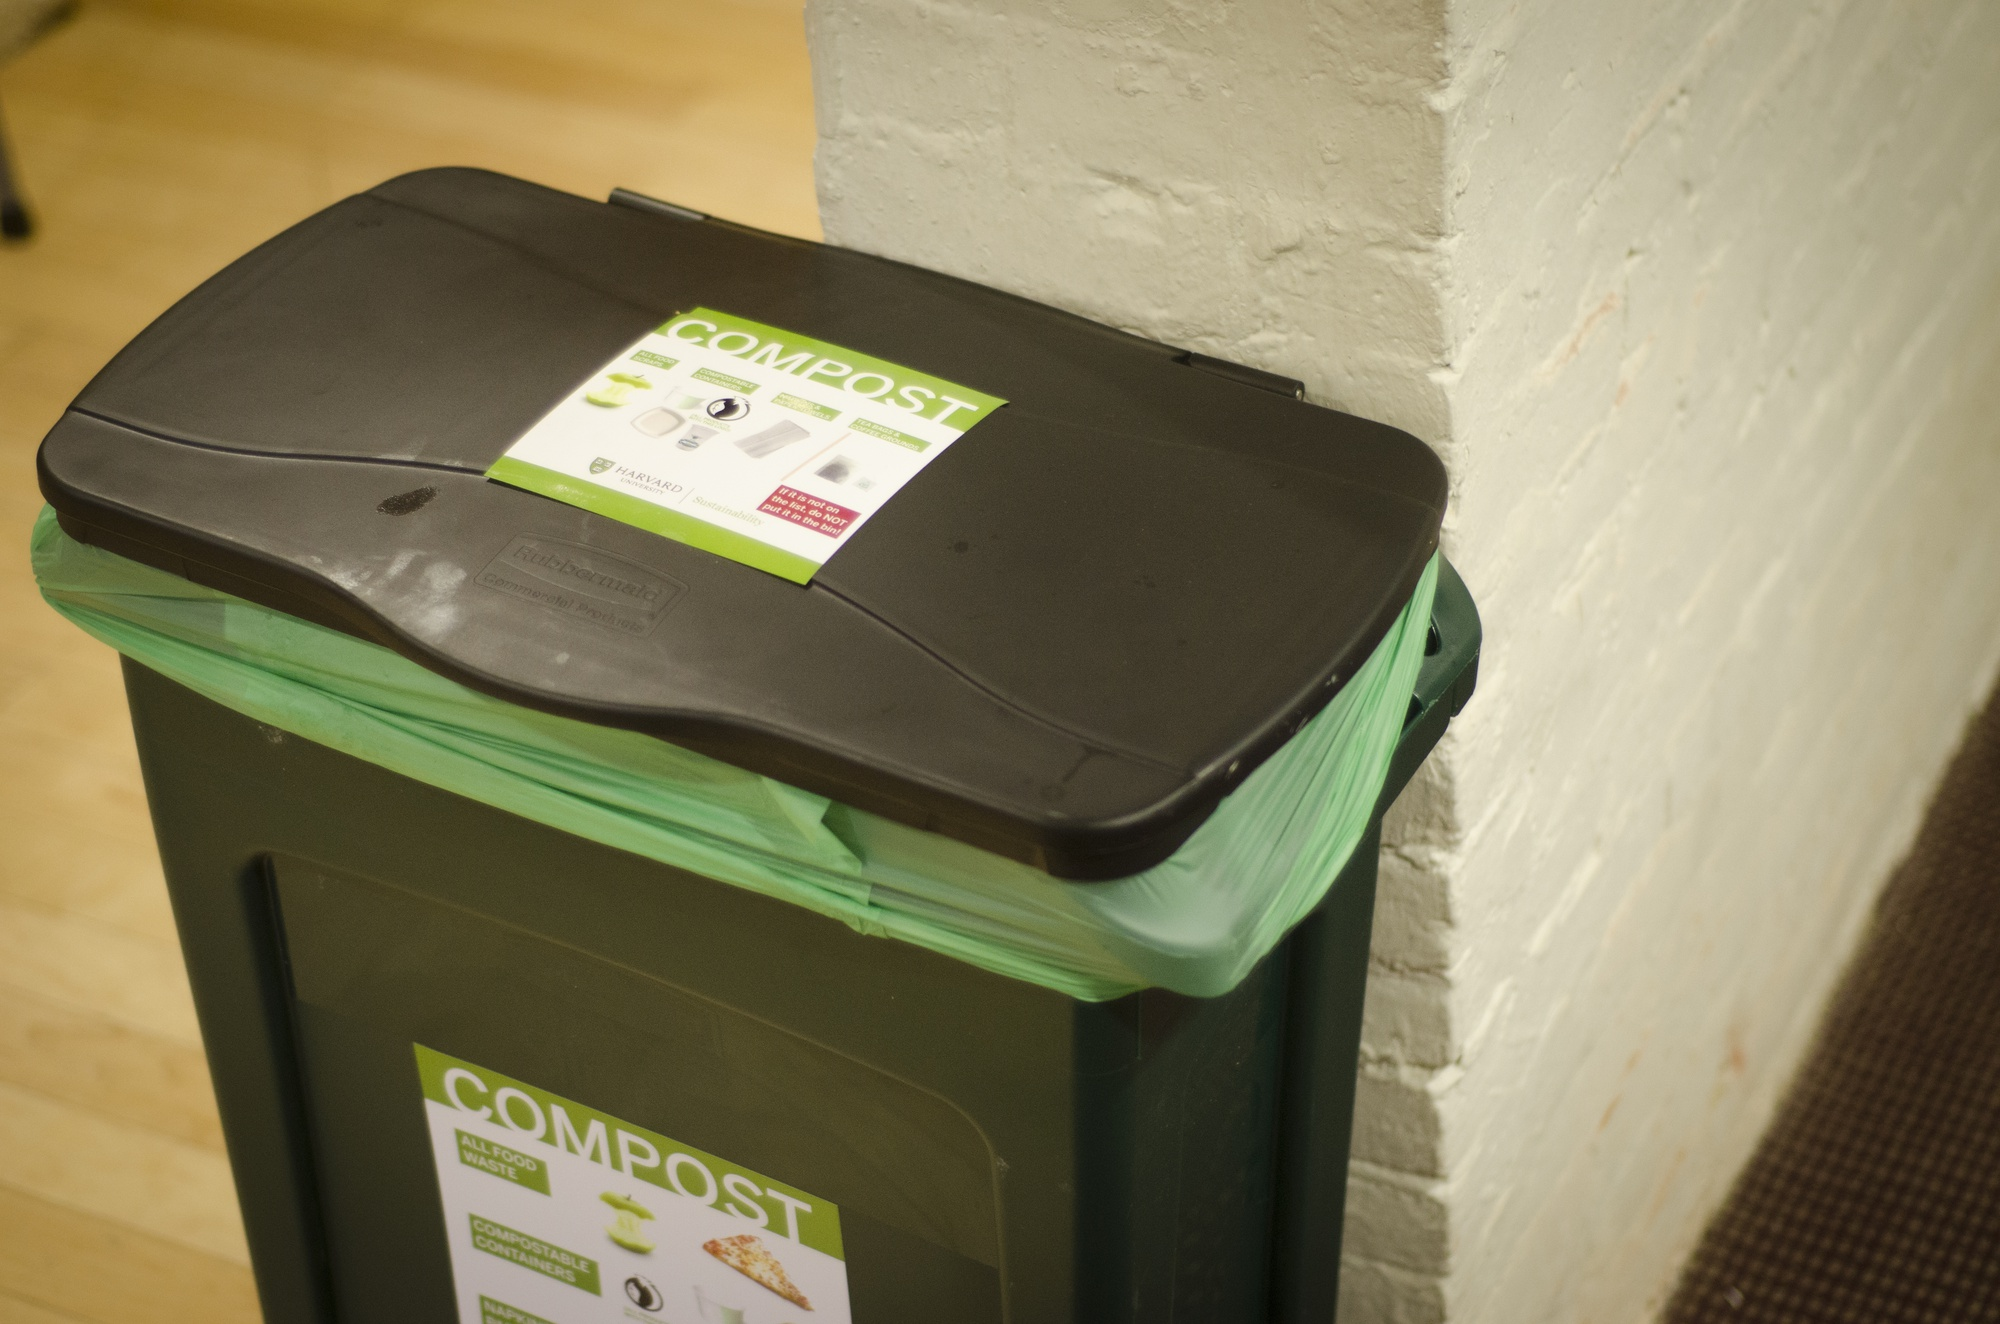 Compost bins, like the one shown above in Thayer Hall, have been placed in all of the freshman dormitories as part of a new waste-diversion program.